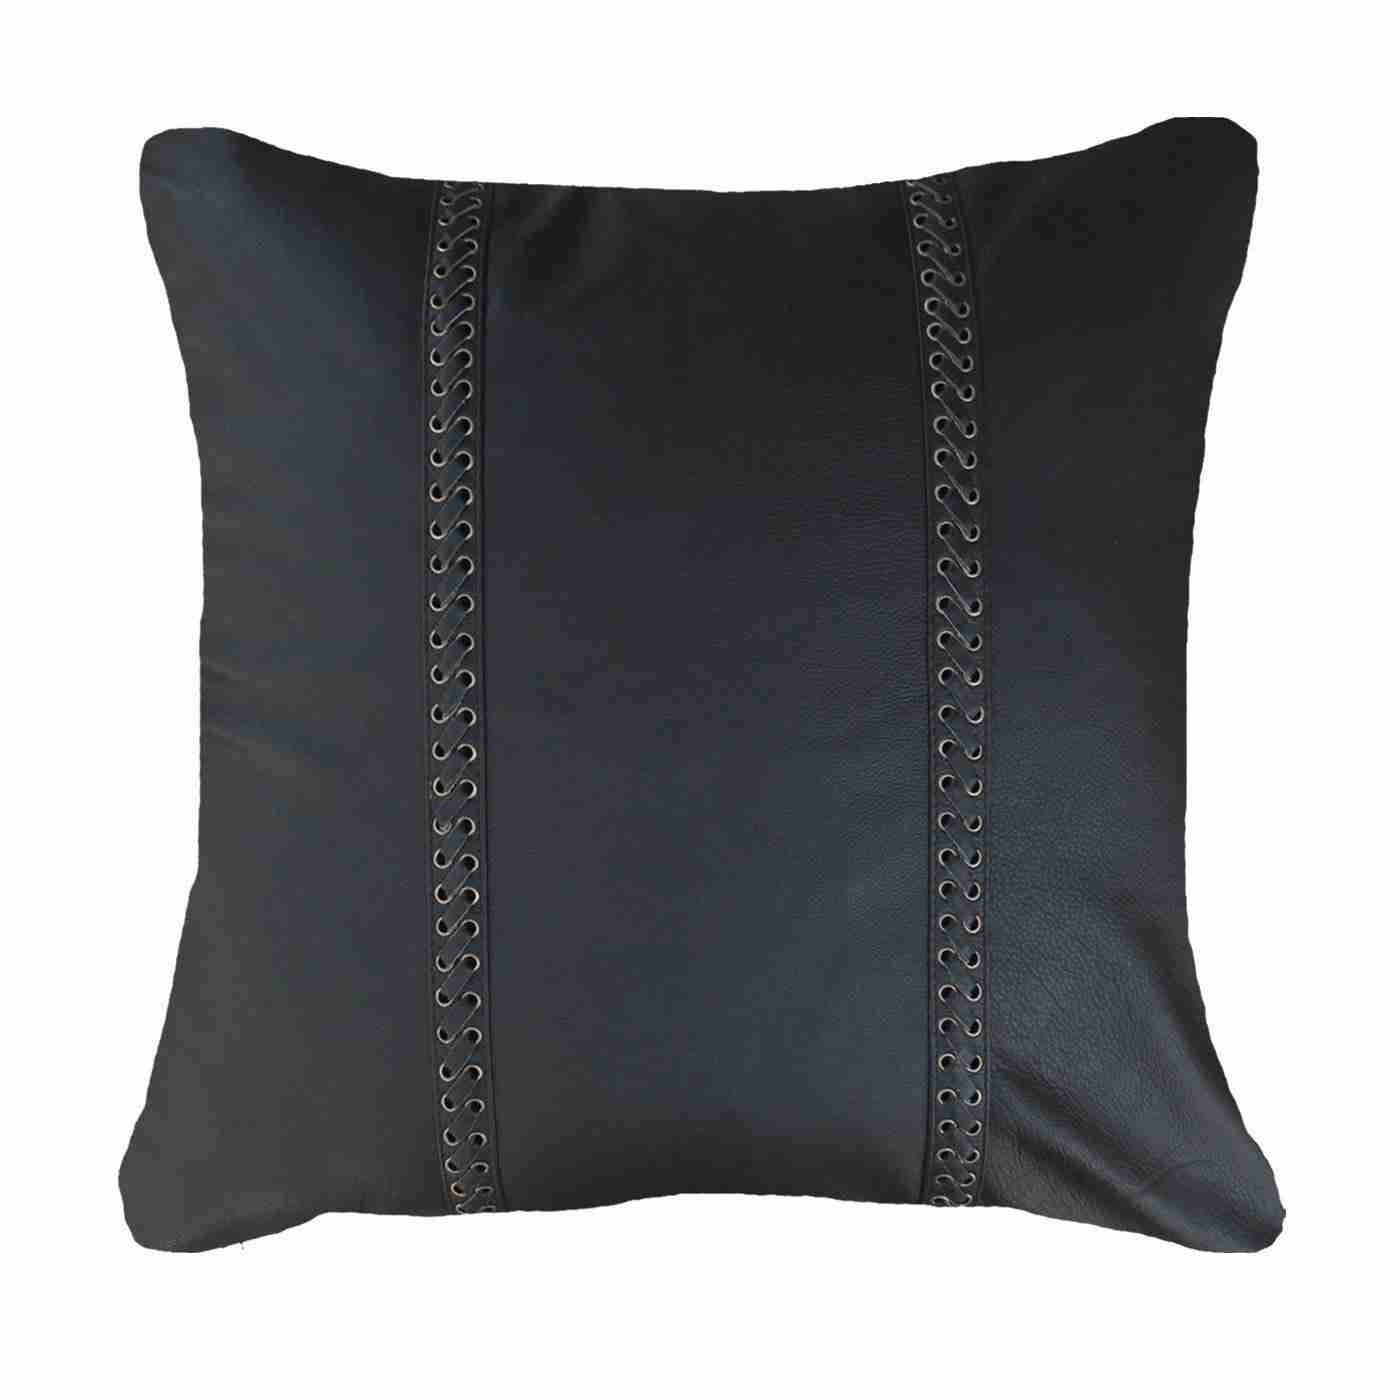 Bandhini Homewear Design Medium Cushion Black / 19 x 19 Leather Lace Black Medium Cushion 50 x 50 cm